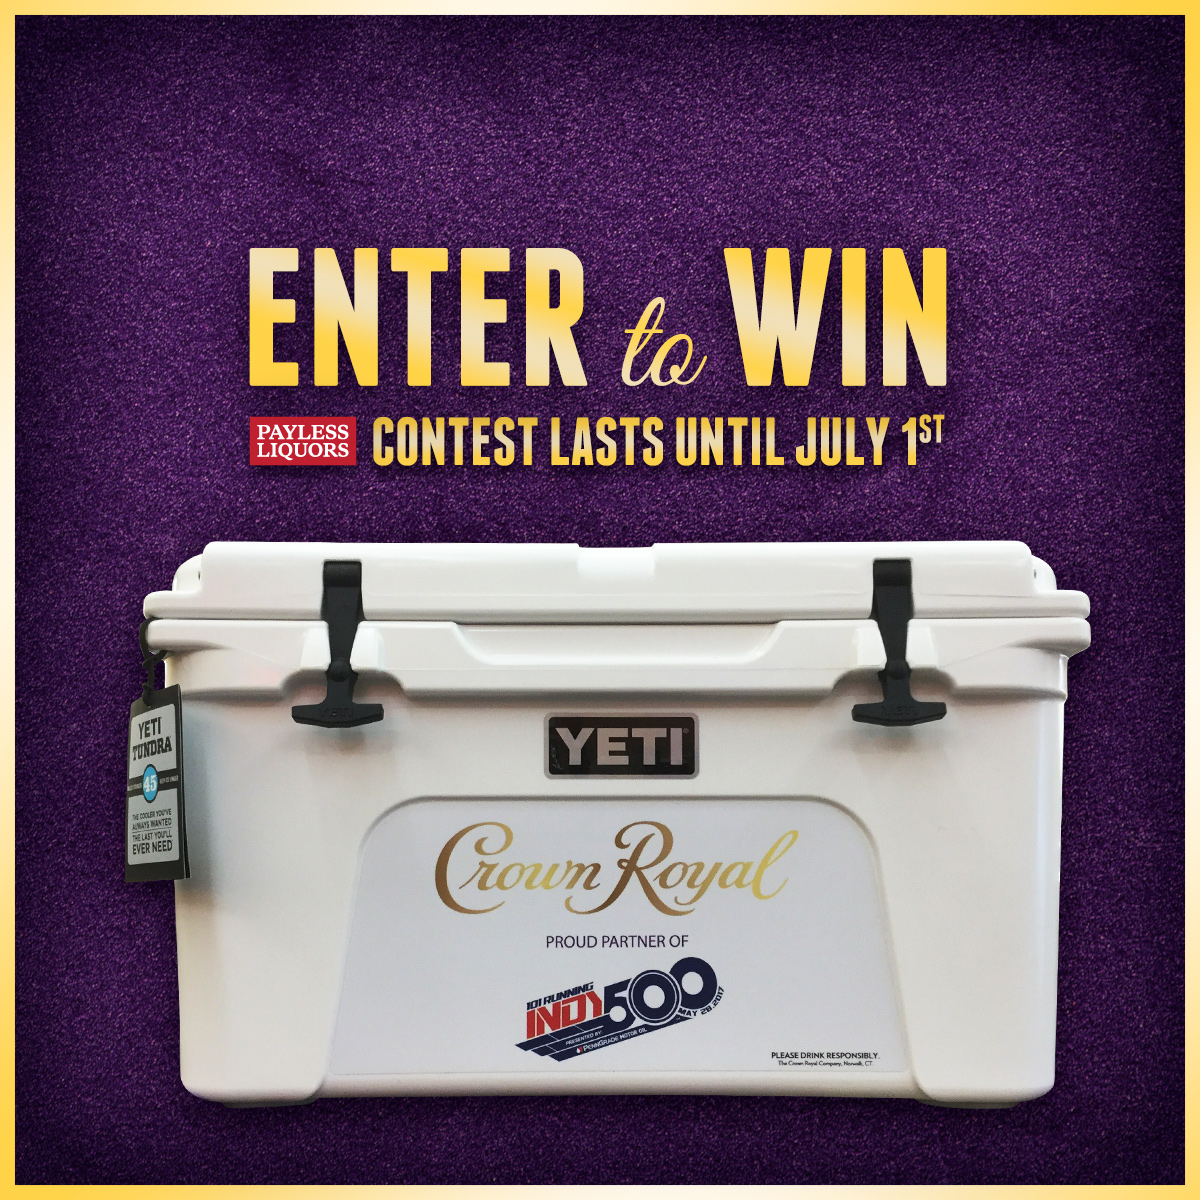 Crown Royal Yeti Cooler